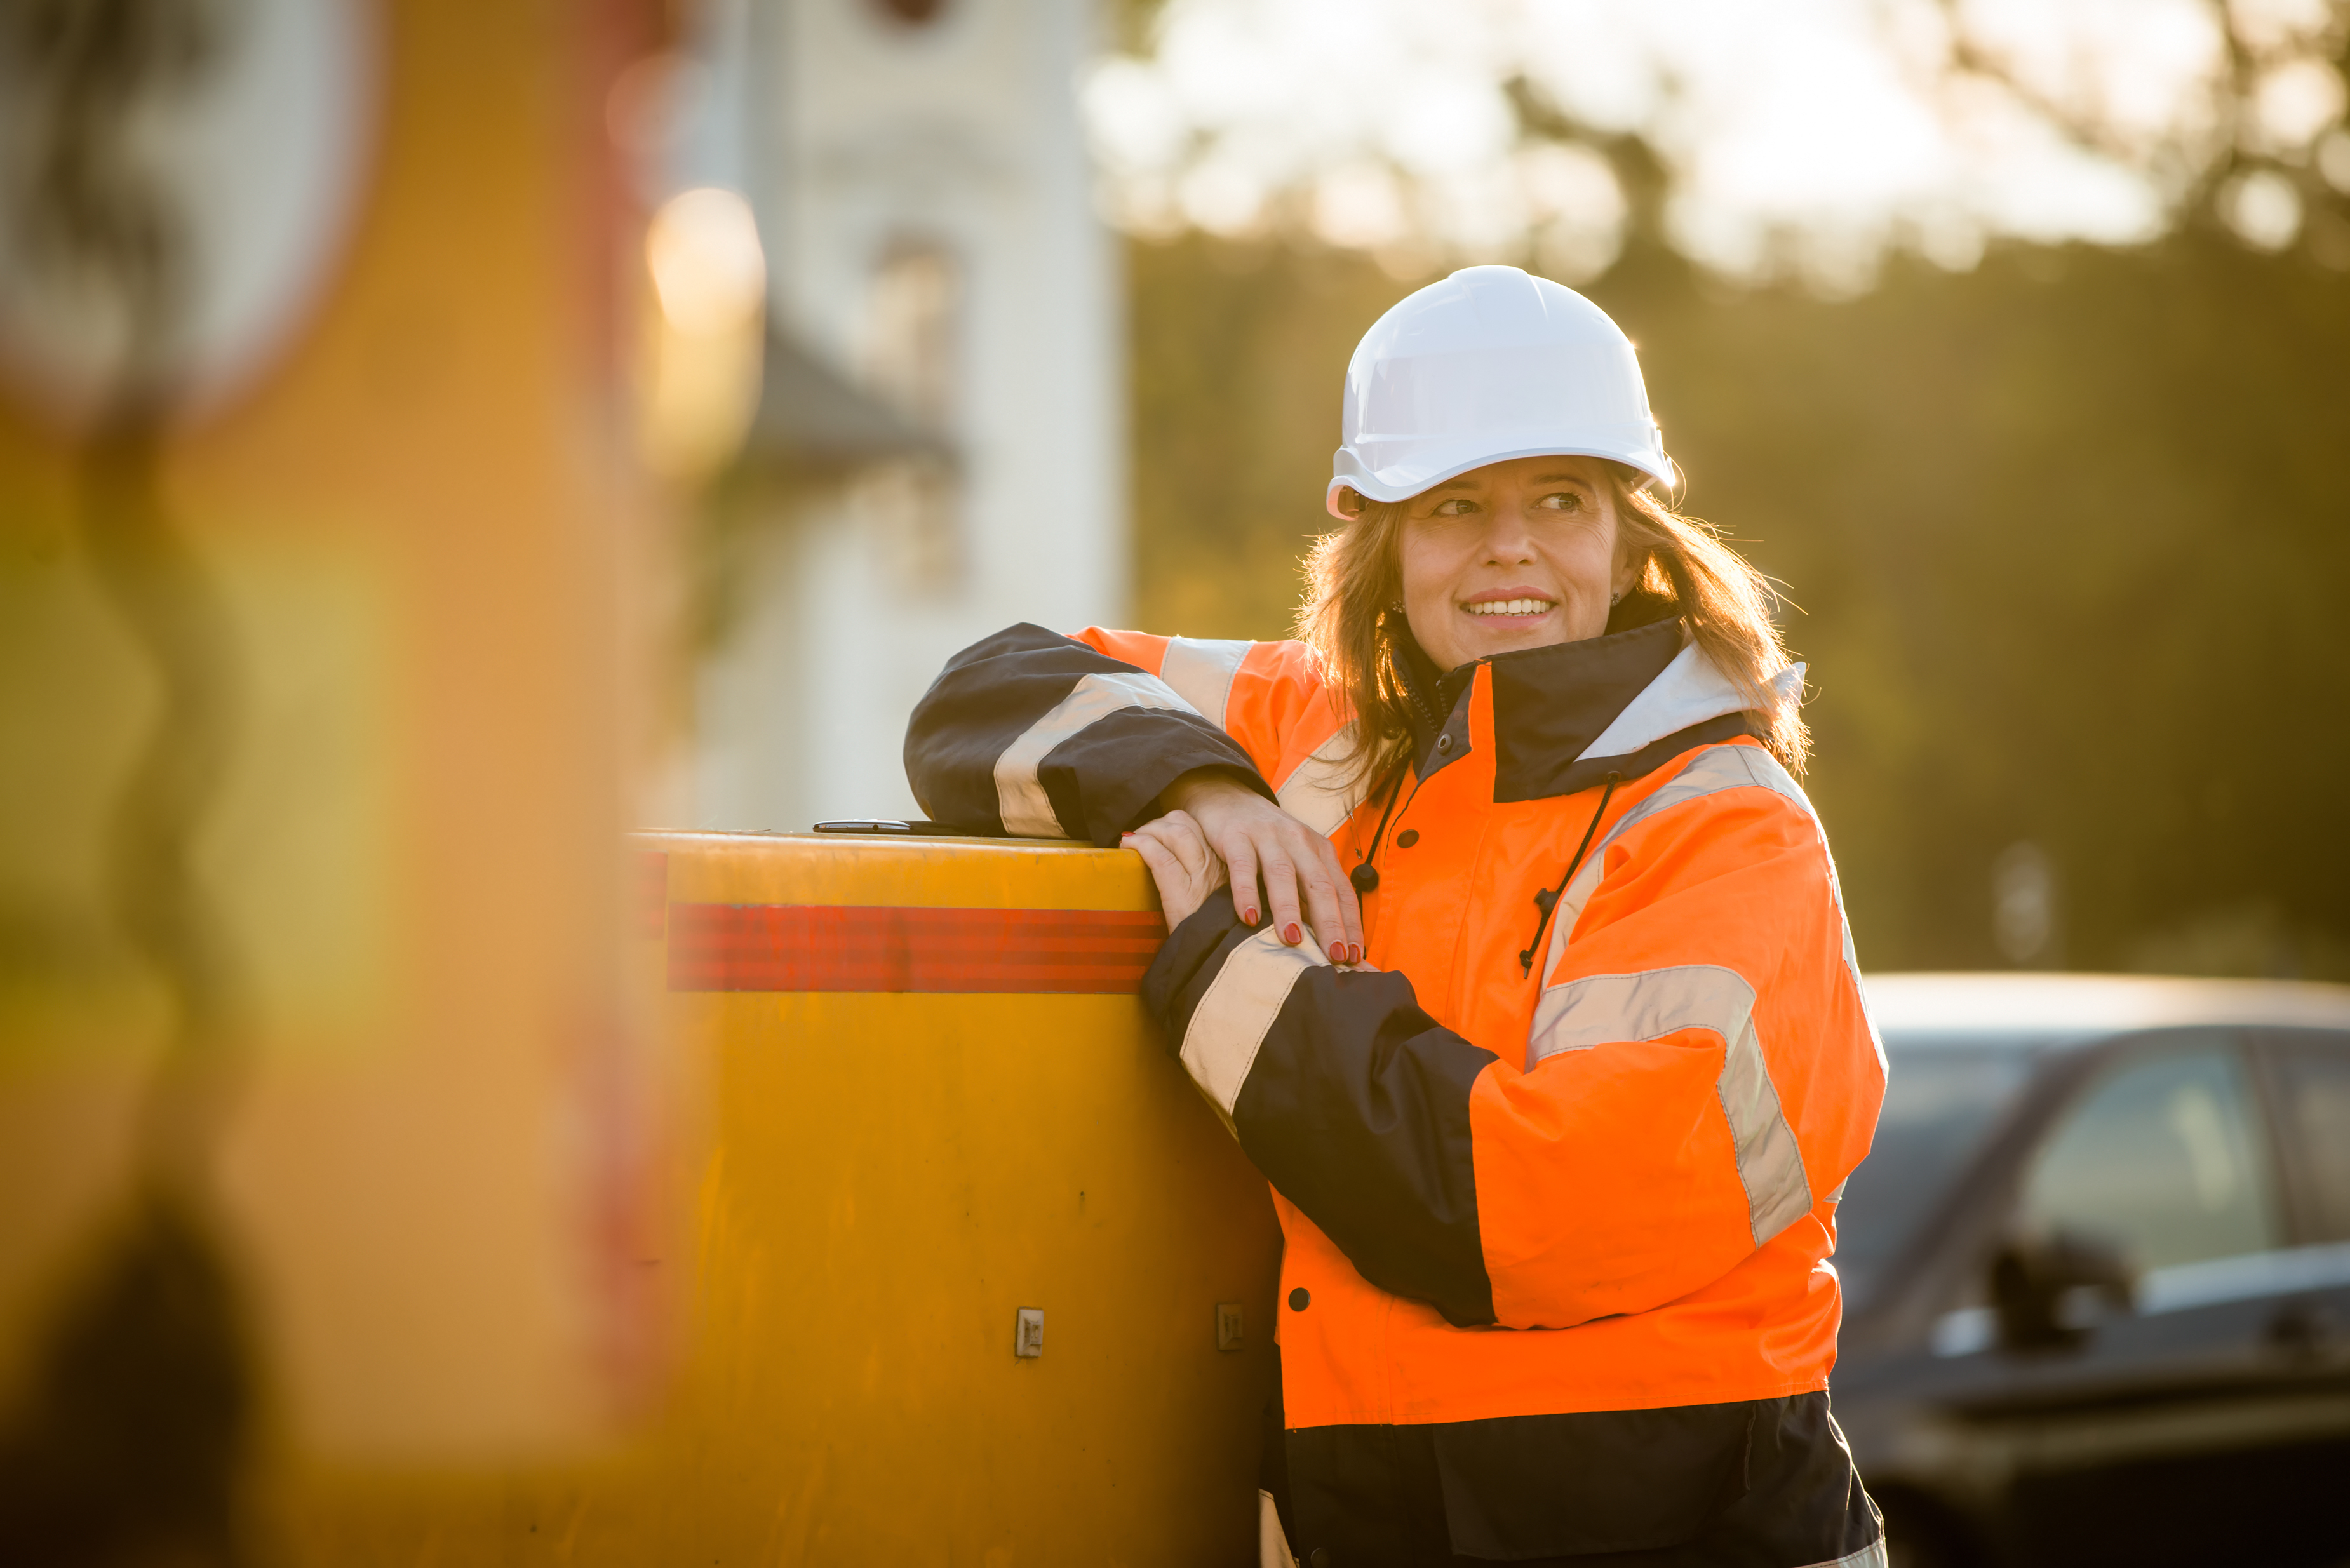 Maintaining protective workwear: what to look out for